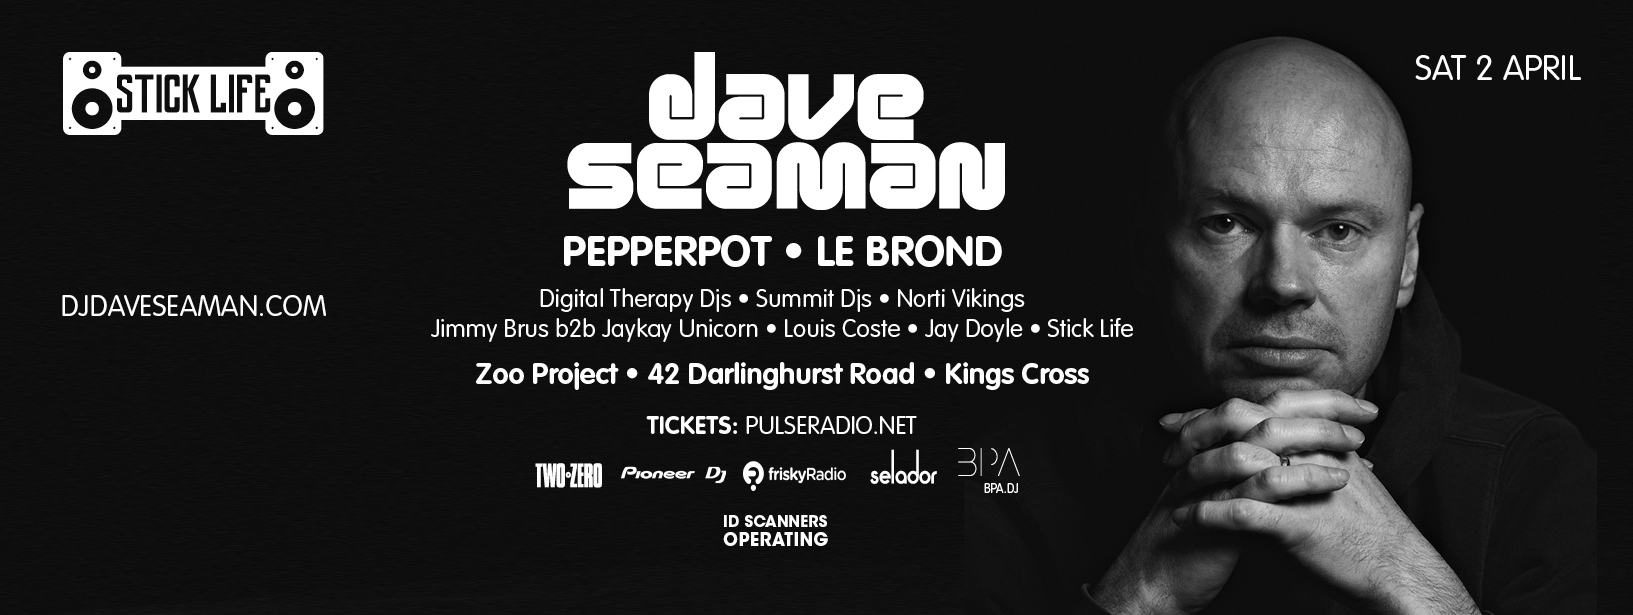 download → Dave Seaman - Live at Stick Life, Zoo Project (Sydney, Australia) - 02-Apr-2016